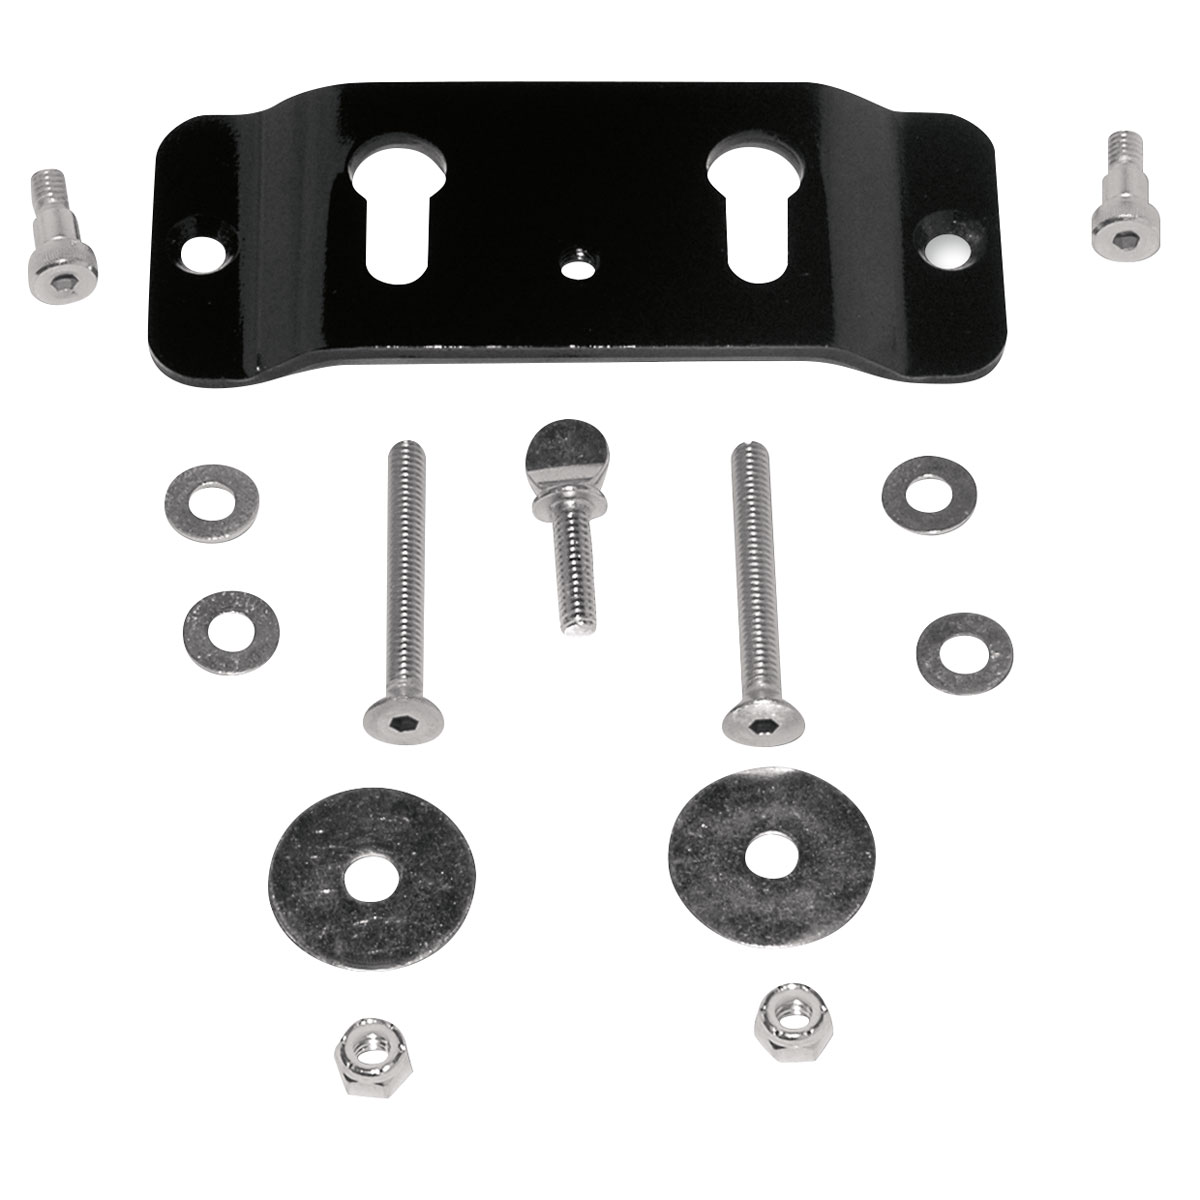 Condor Pit-Stop Trailer-Stop Adapter Kit